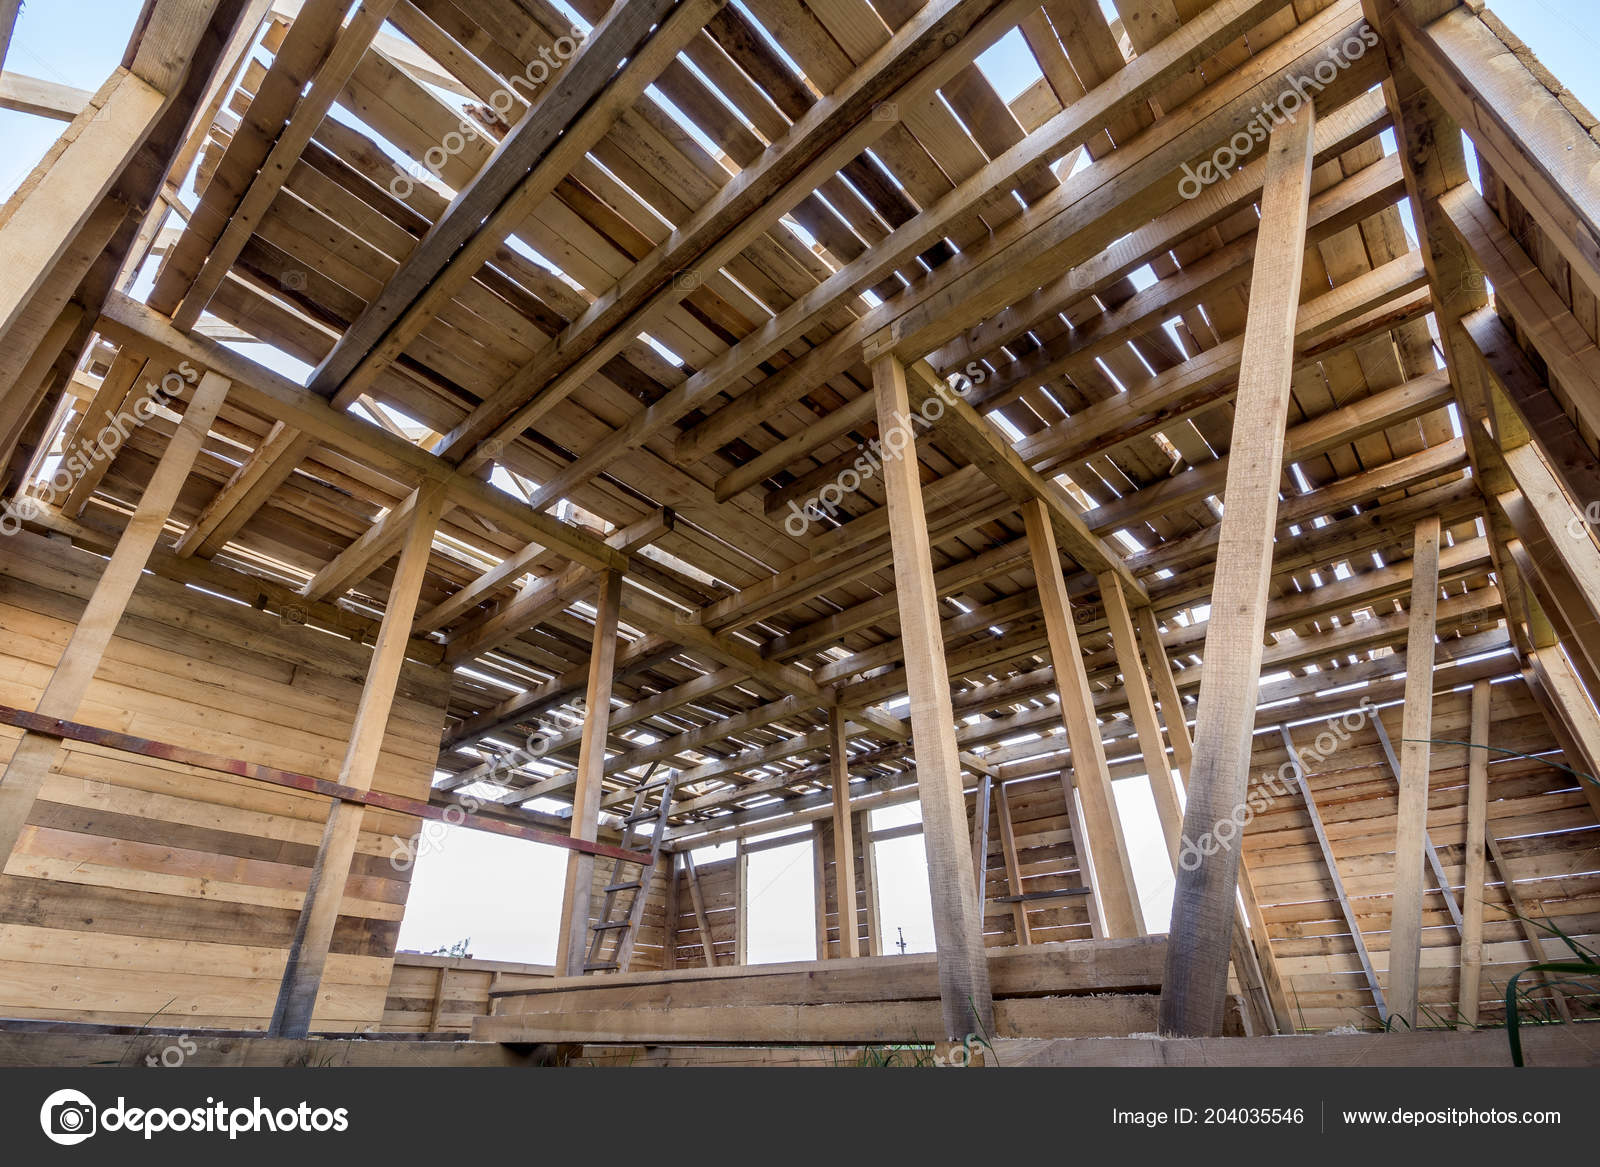 New Wooden House Construction Close Walls Ceiling Frame Windows Openings Stock Photo Image By C Bilanol I Ua 204035546